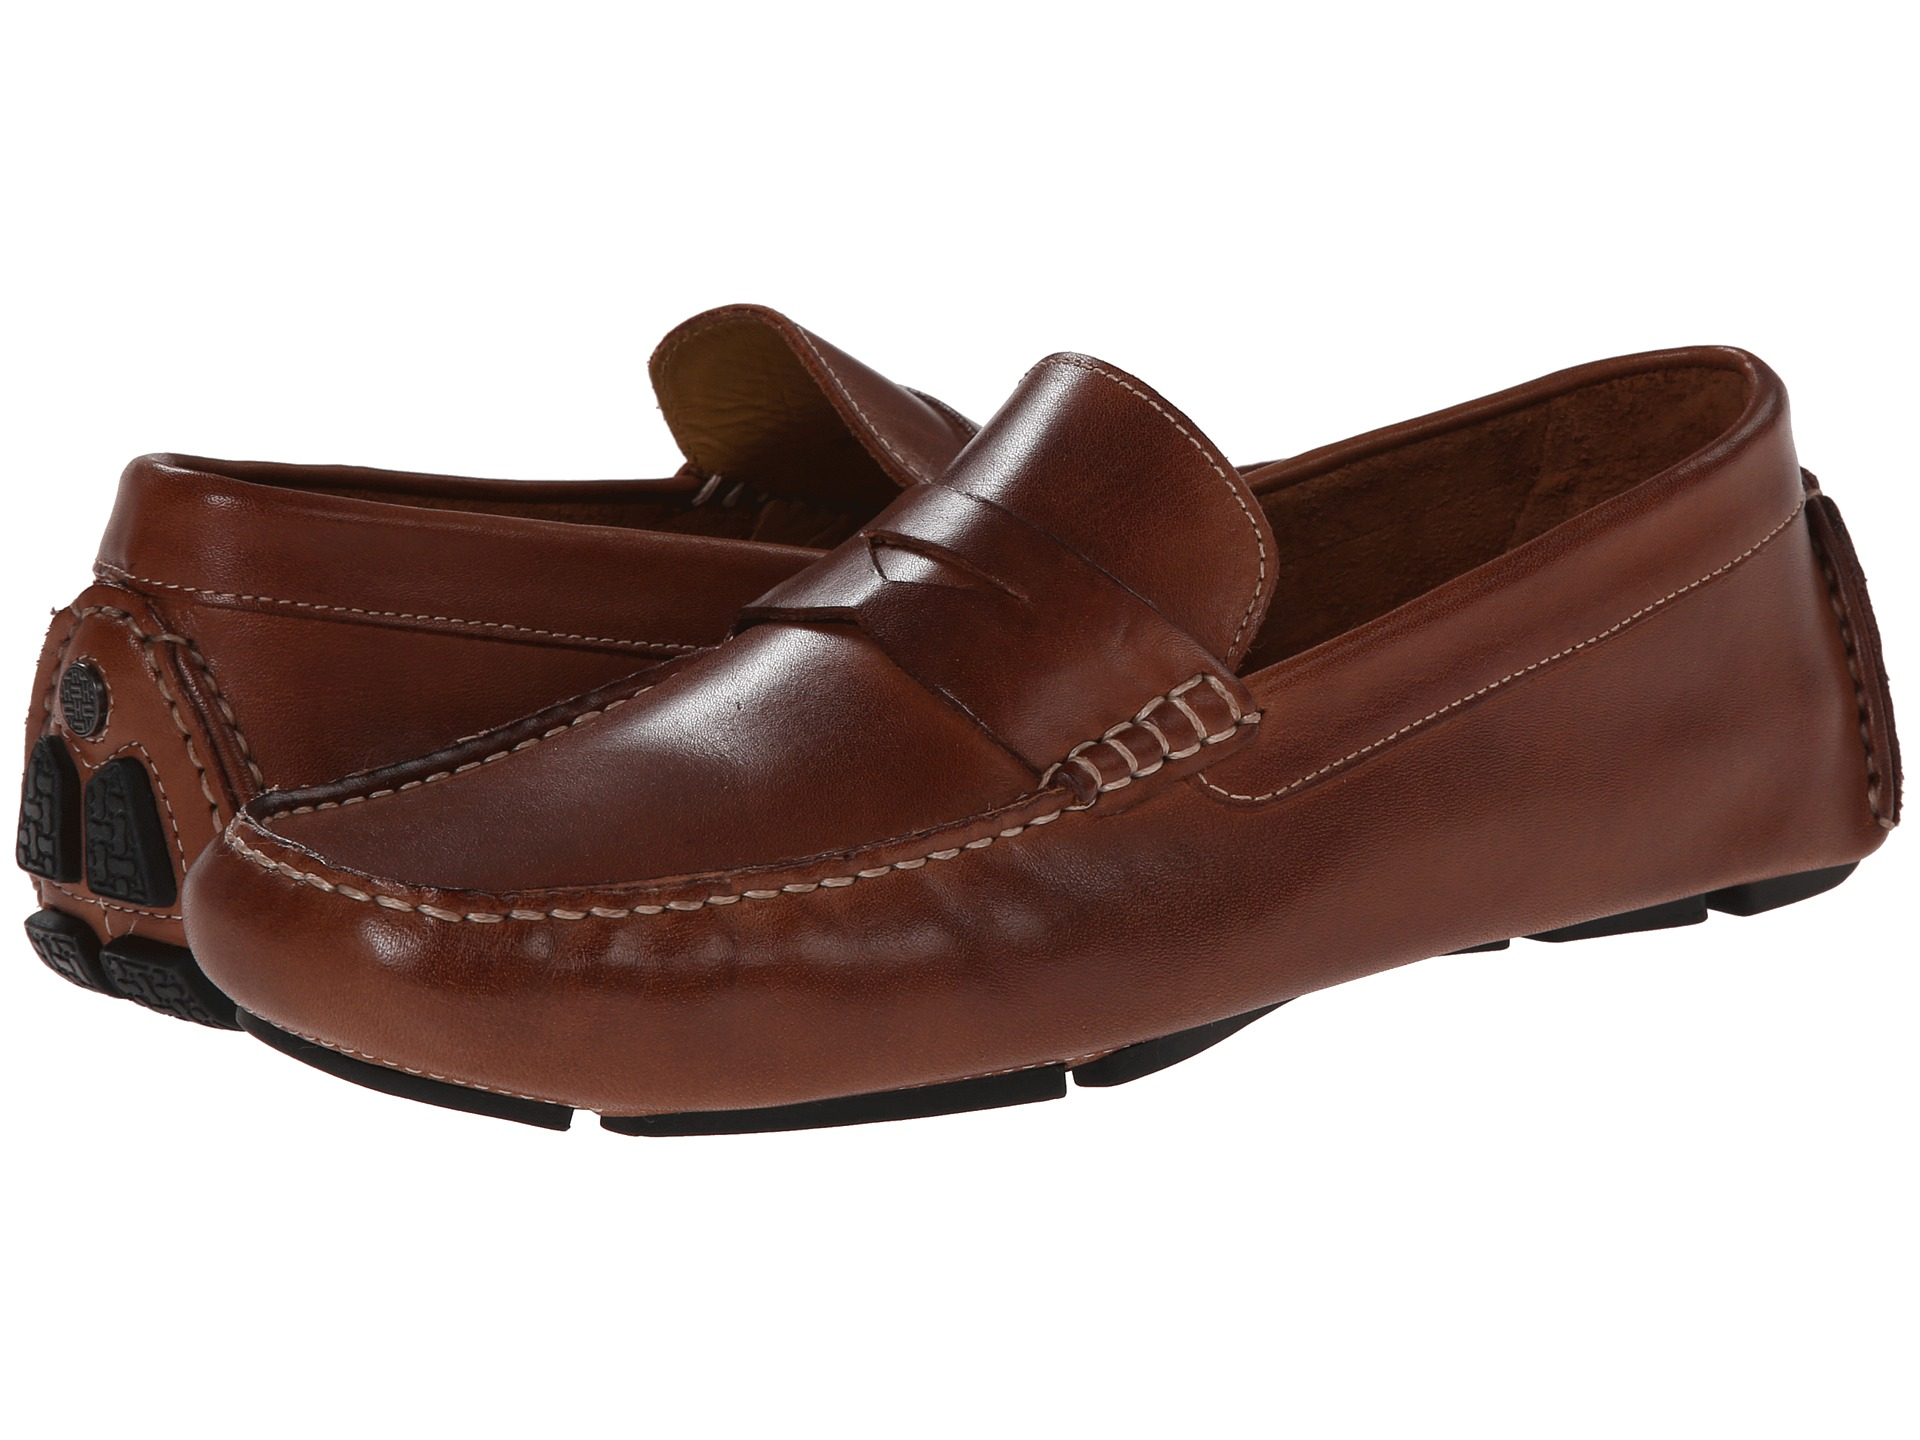 Cole Haan Howland Penny - Zappos.com Free Shipping BOTH Ways